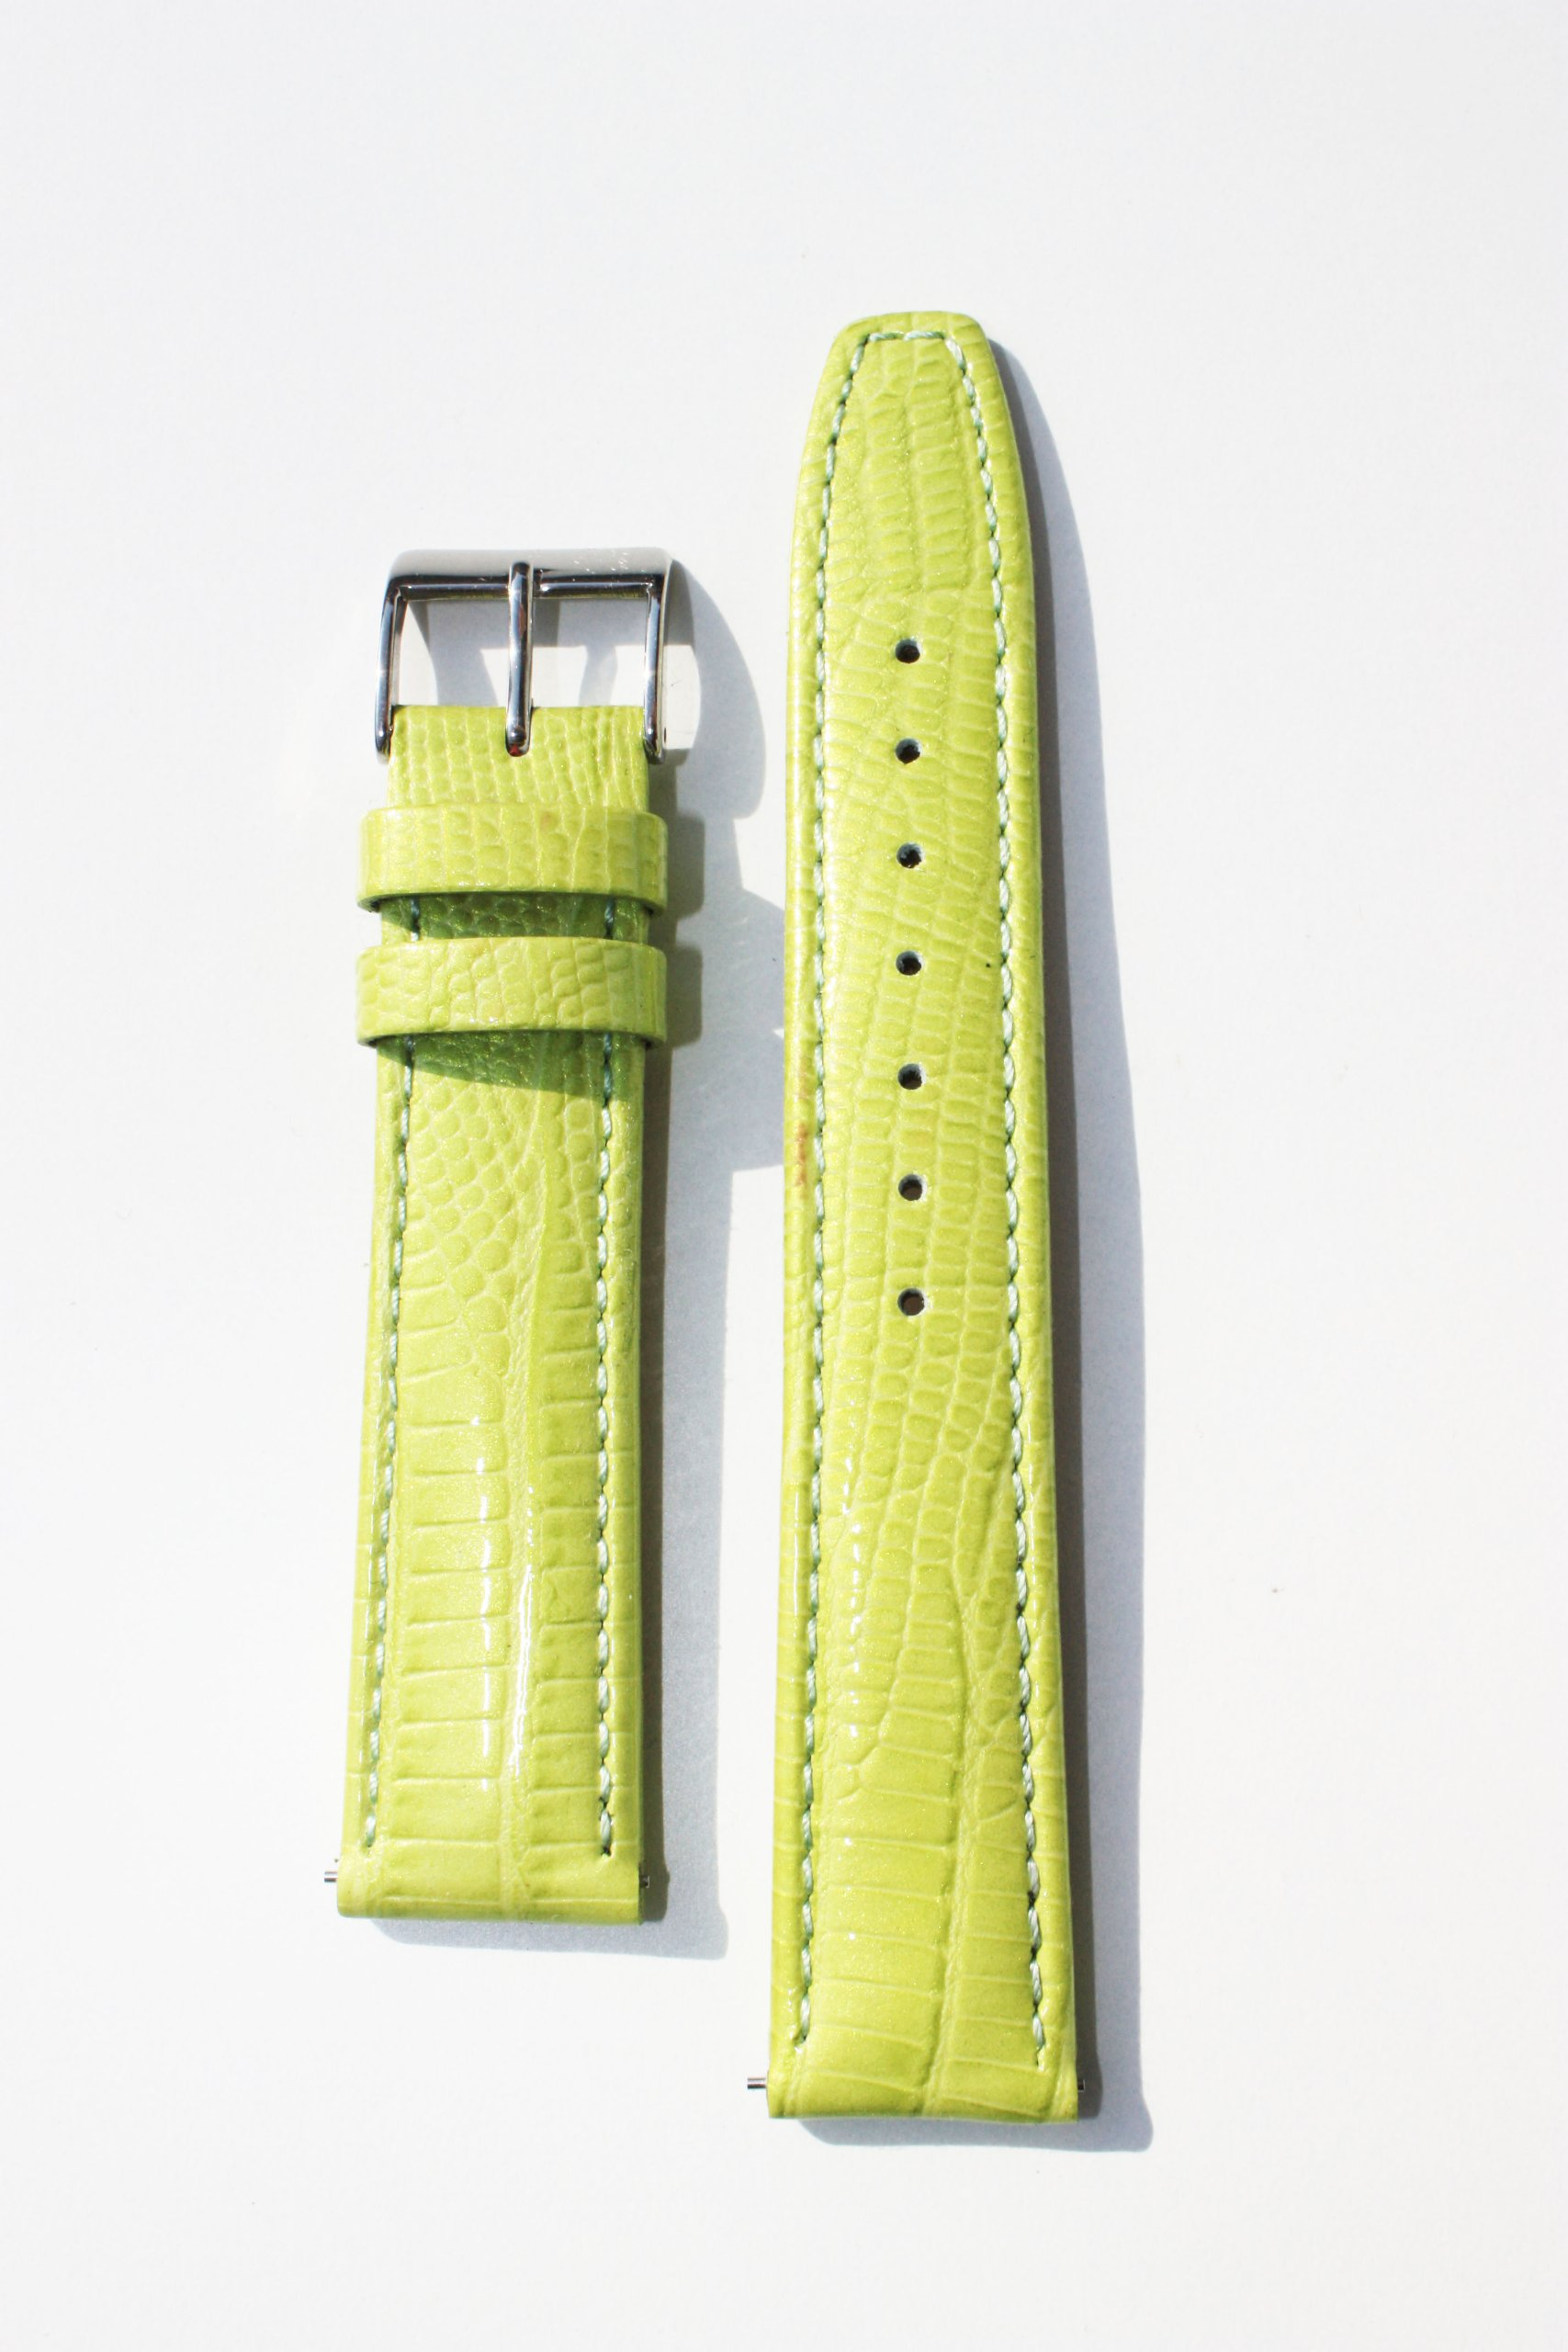 14mm Lime Green Quick-release Patent Leather Lizard Grain Watchband for Michele Style